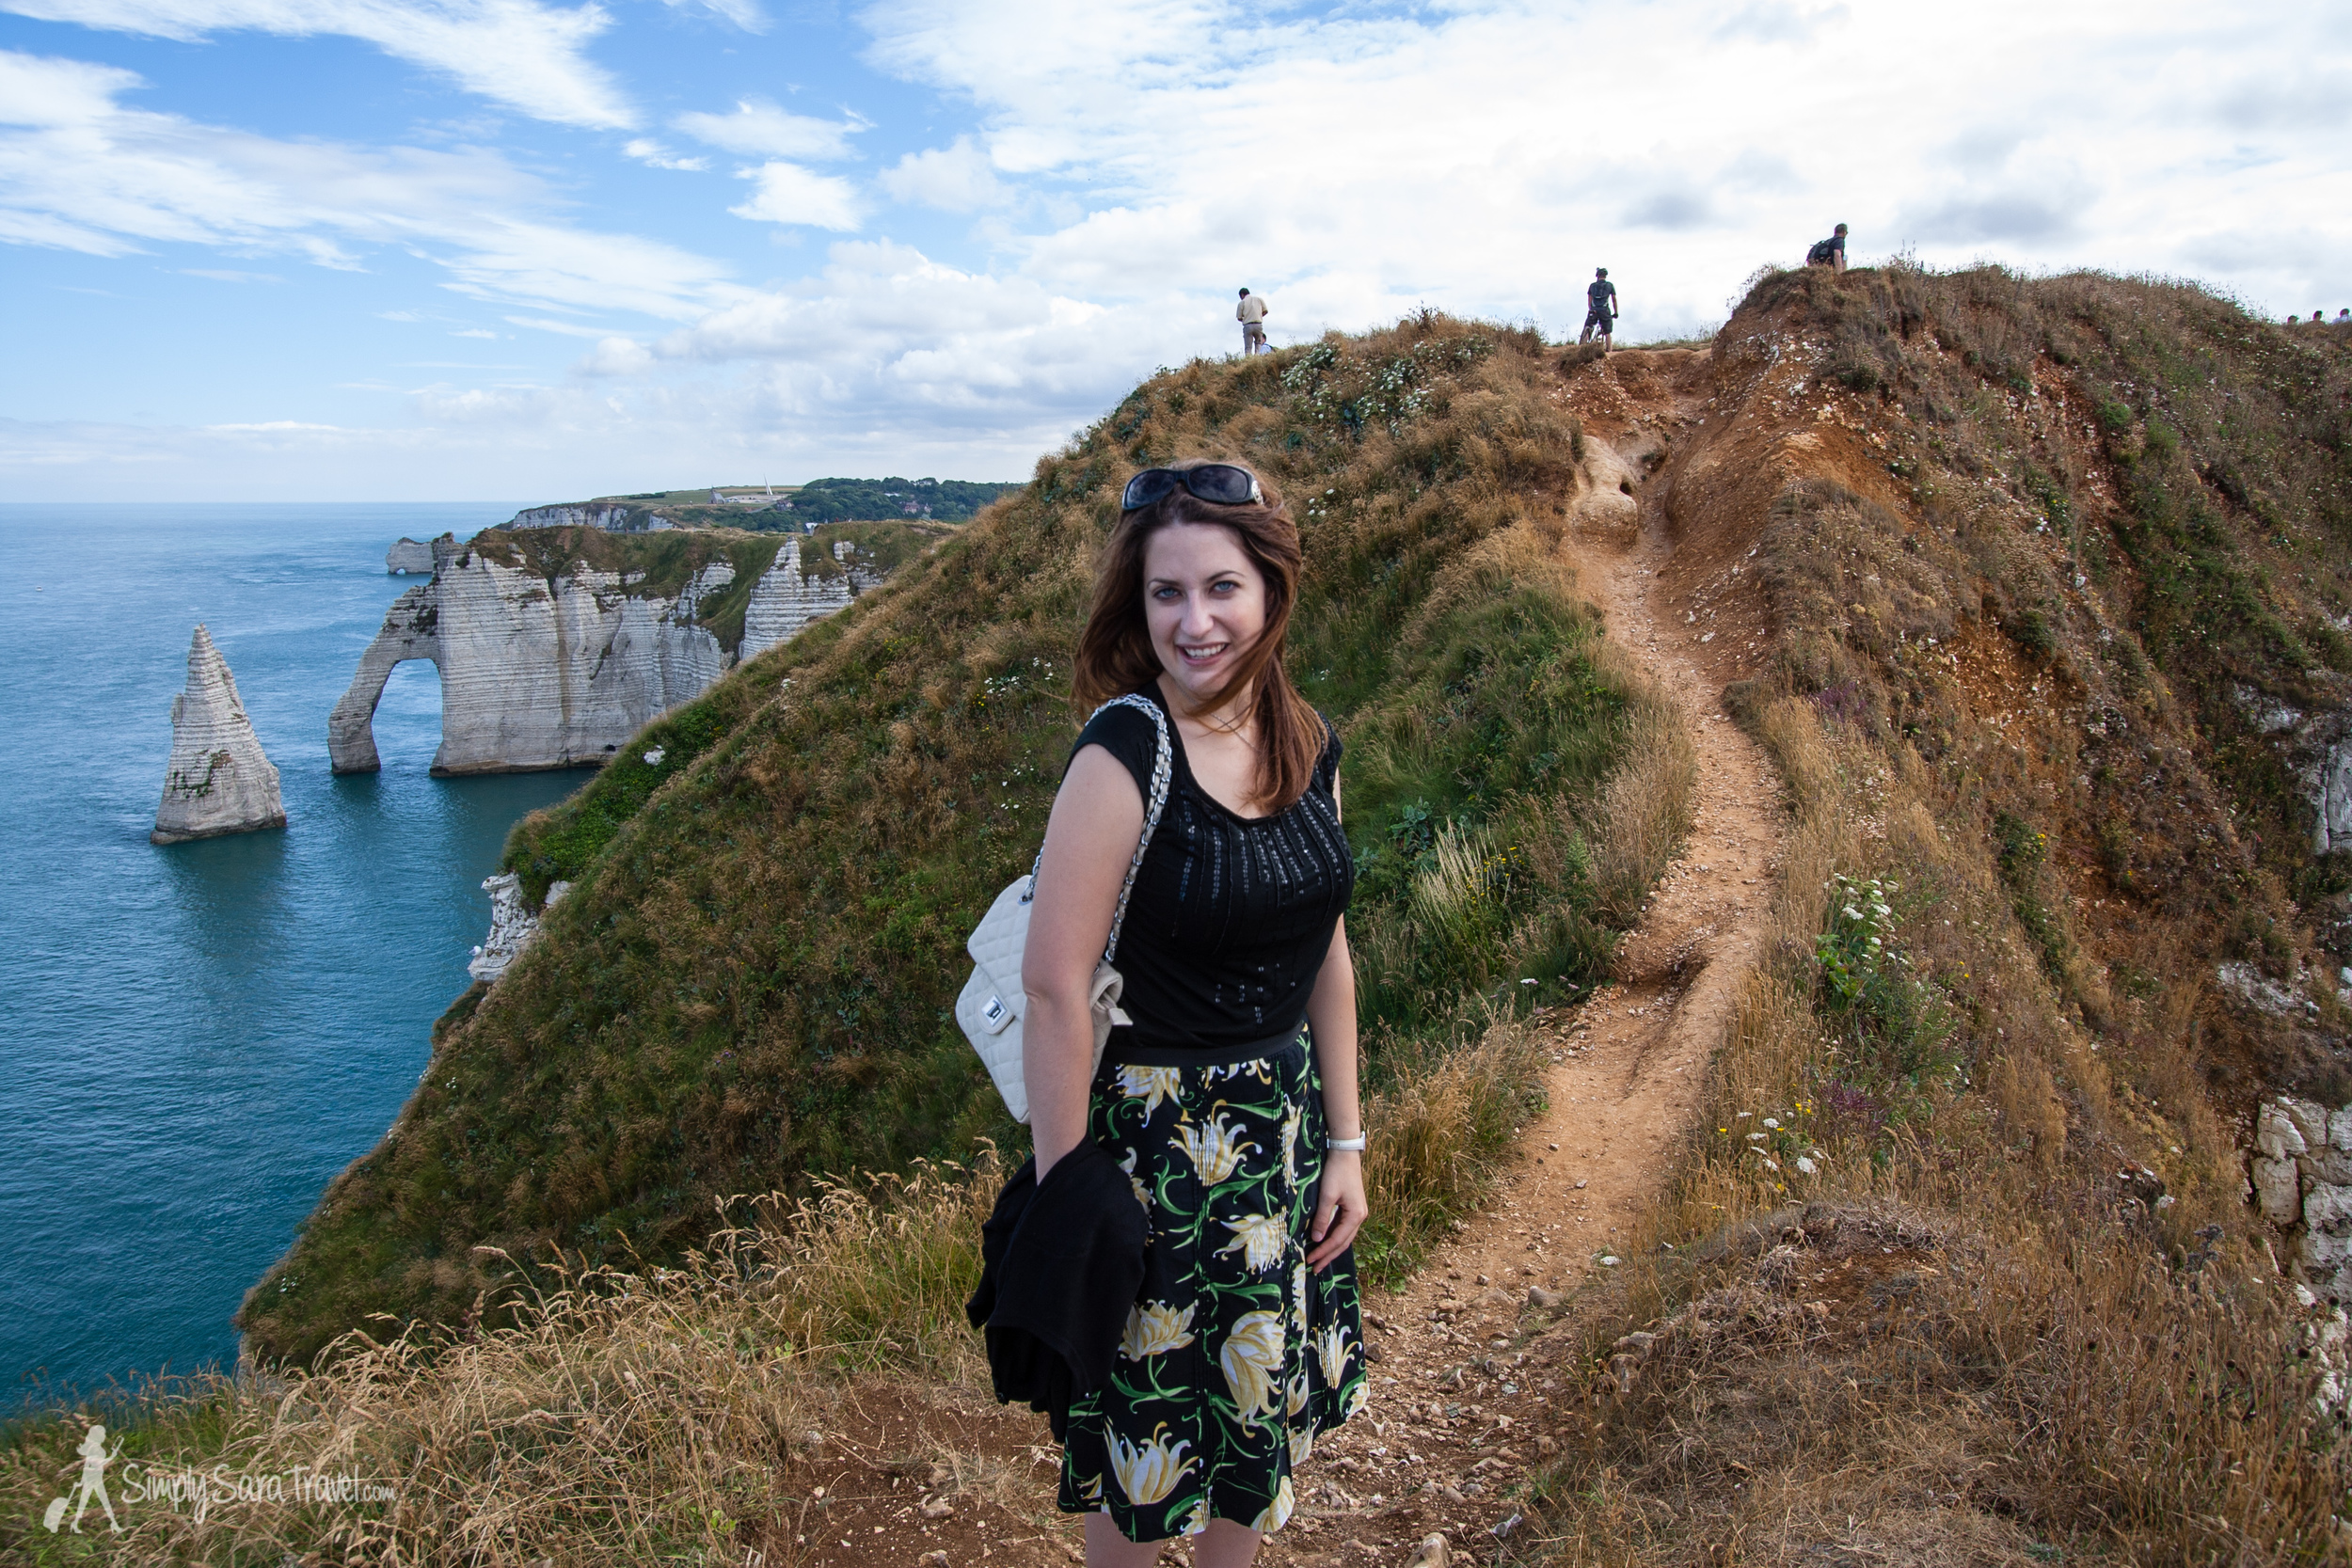 Walking along the cliffs on a warm July afternoon